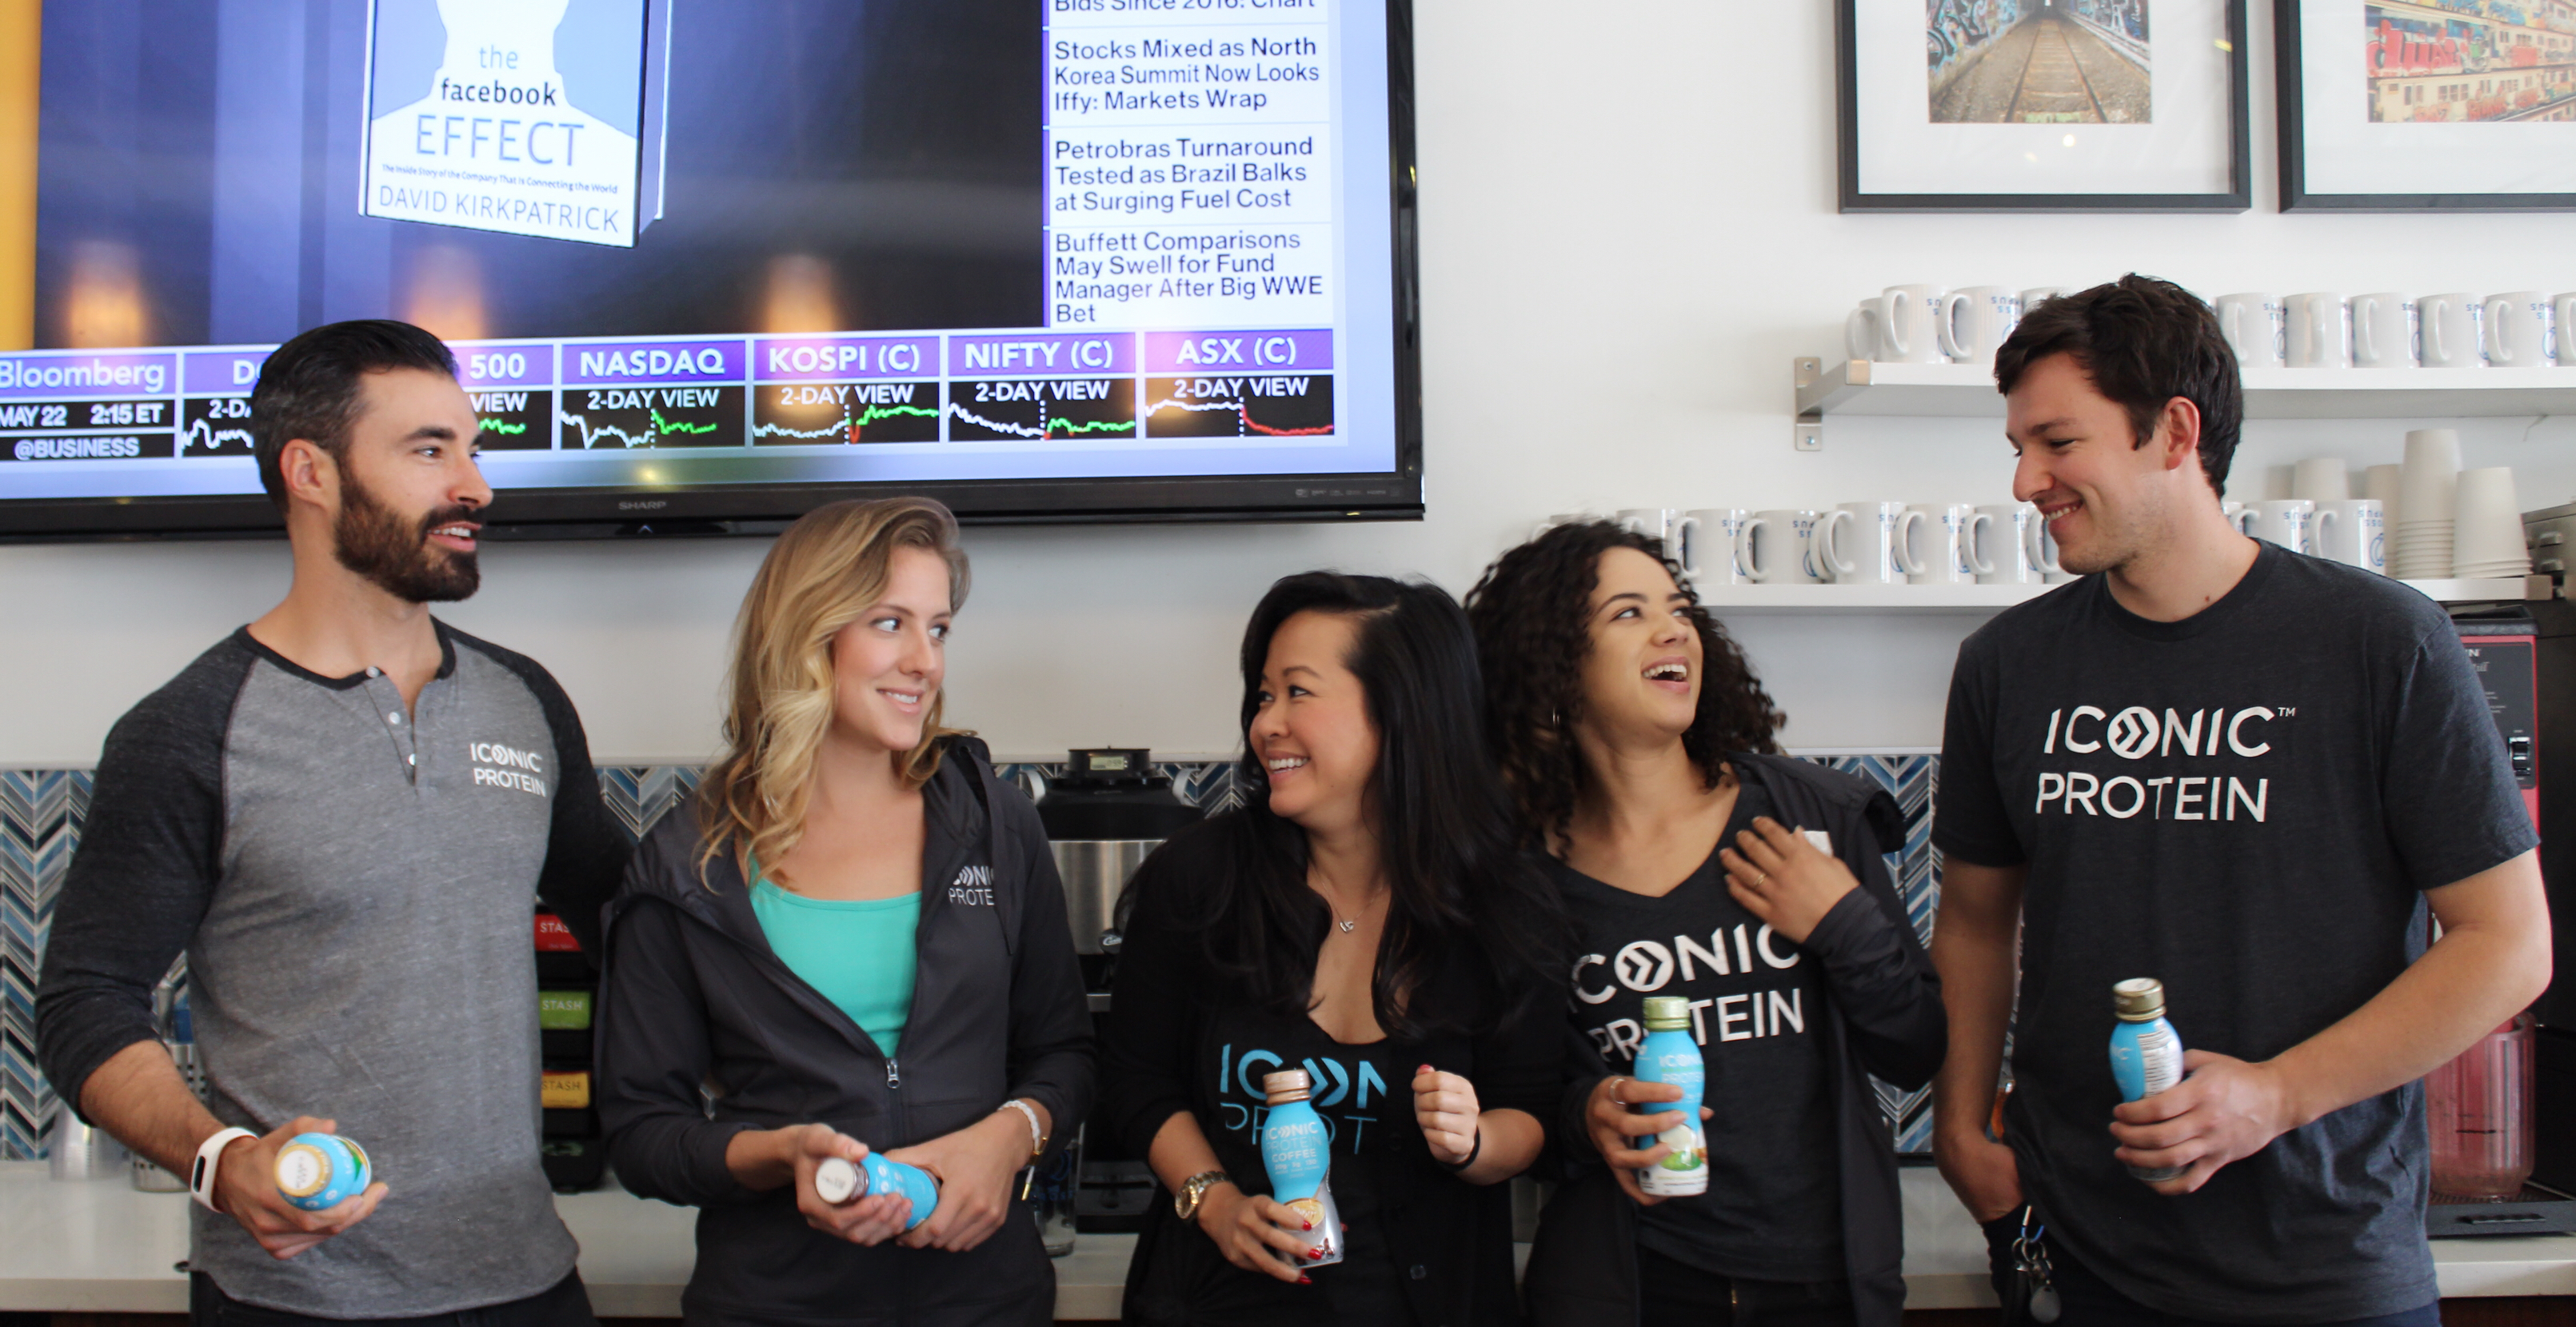 iconic protein cross campus santa monica coworking space office space member spotlight company protein drink health wellness fitness billy bosch